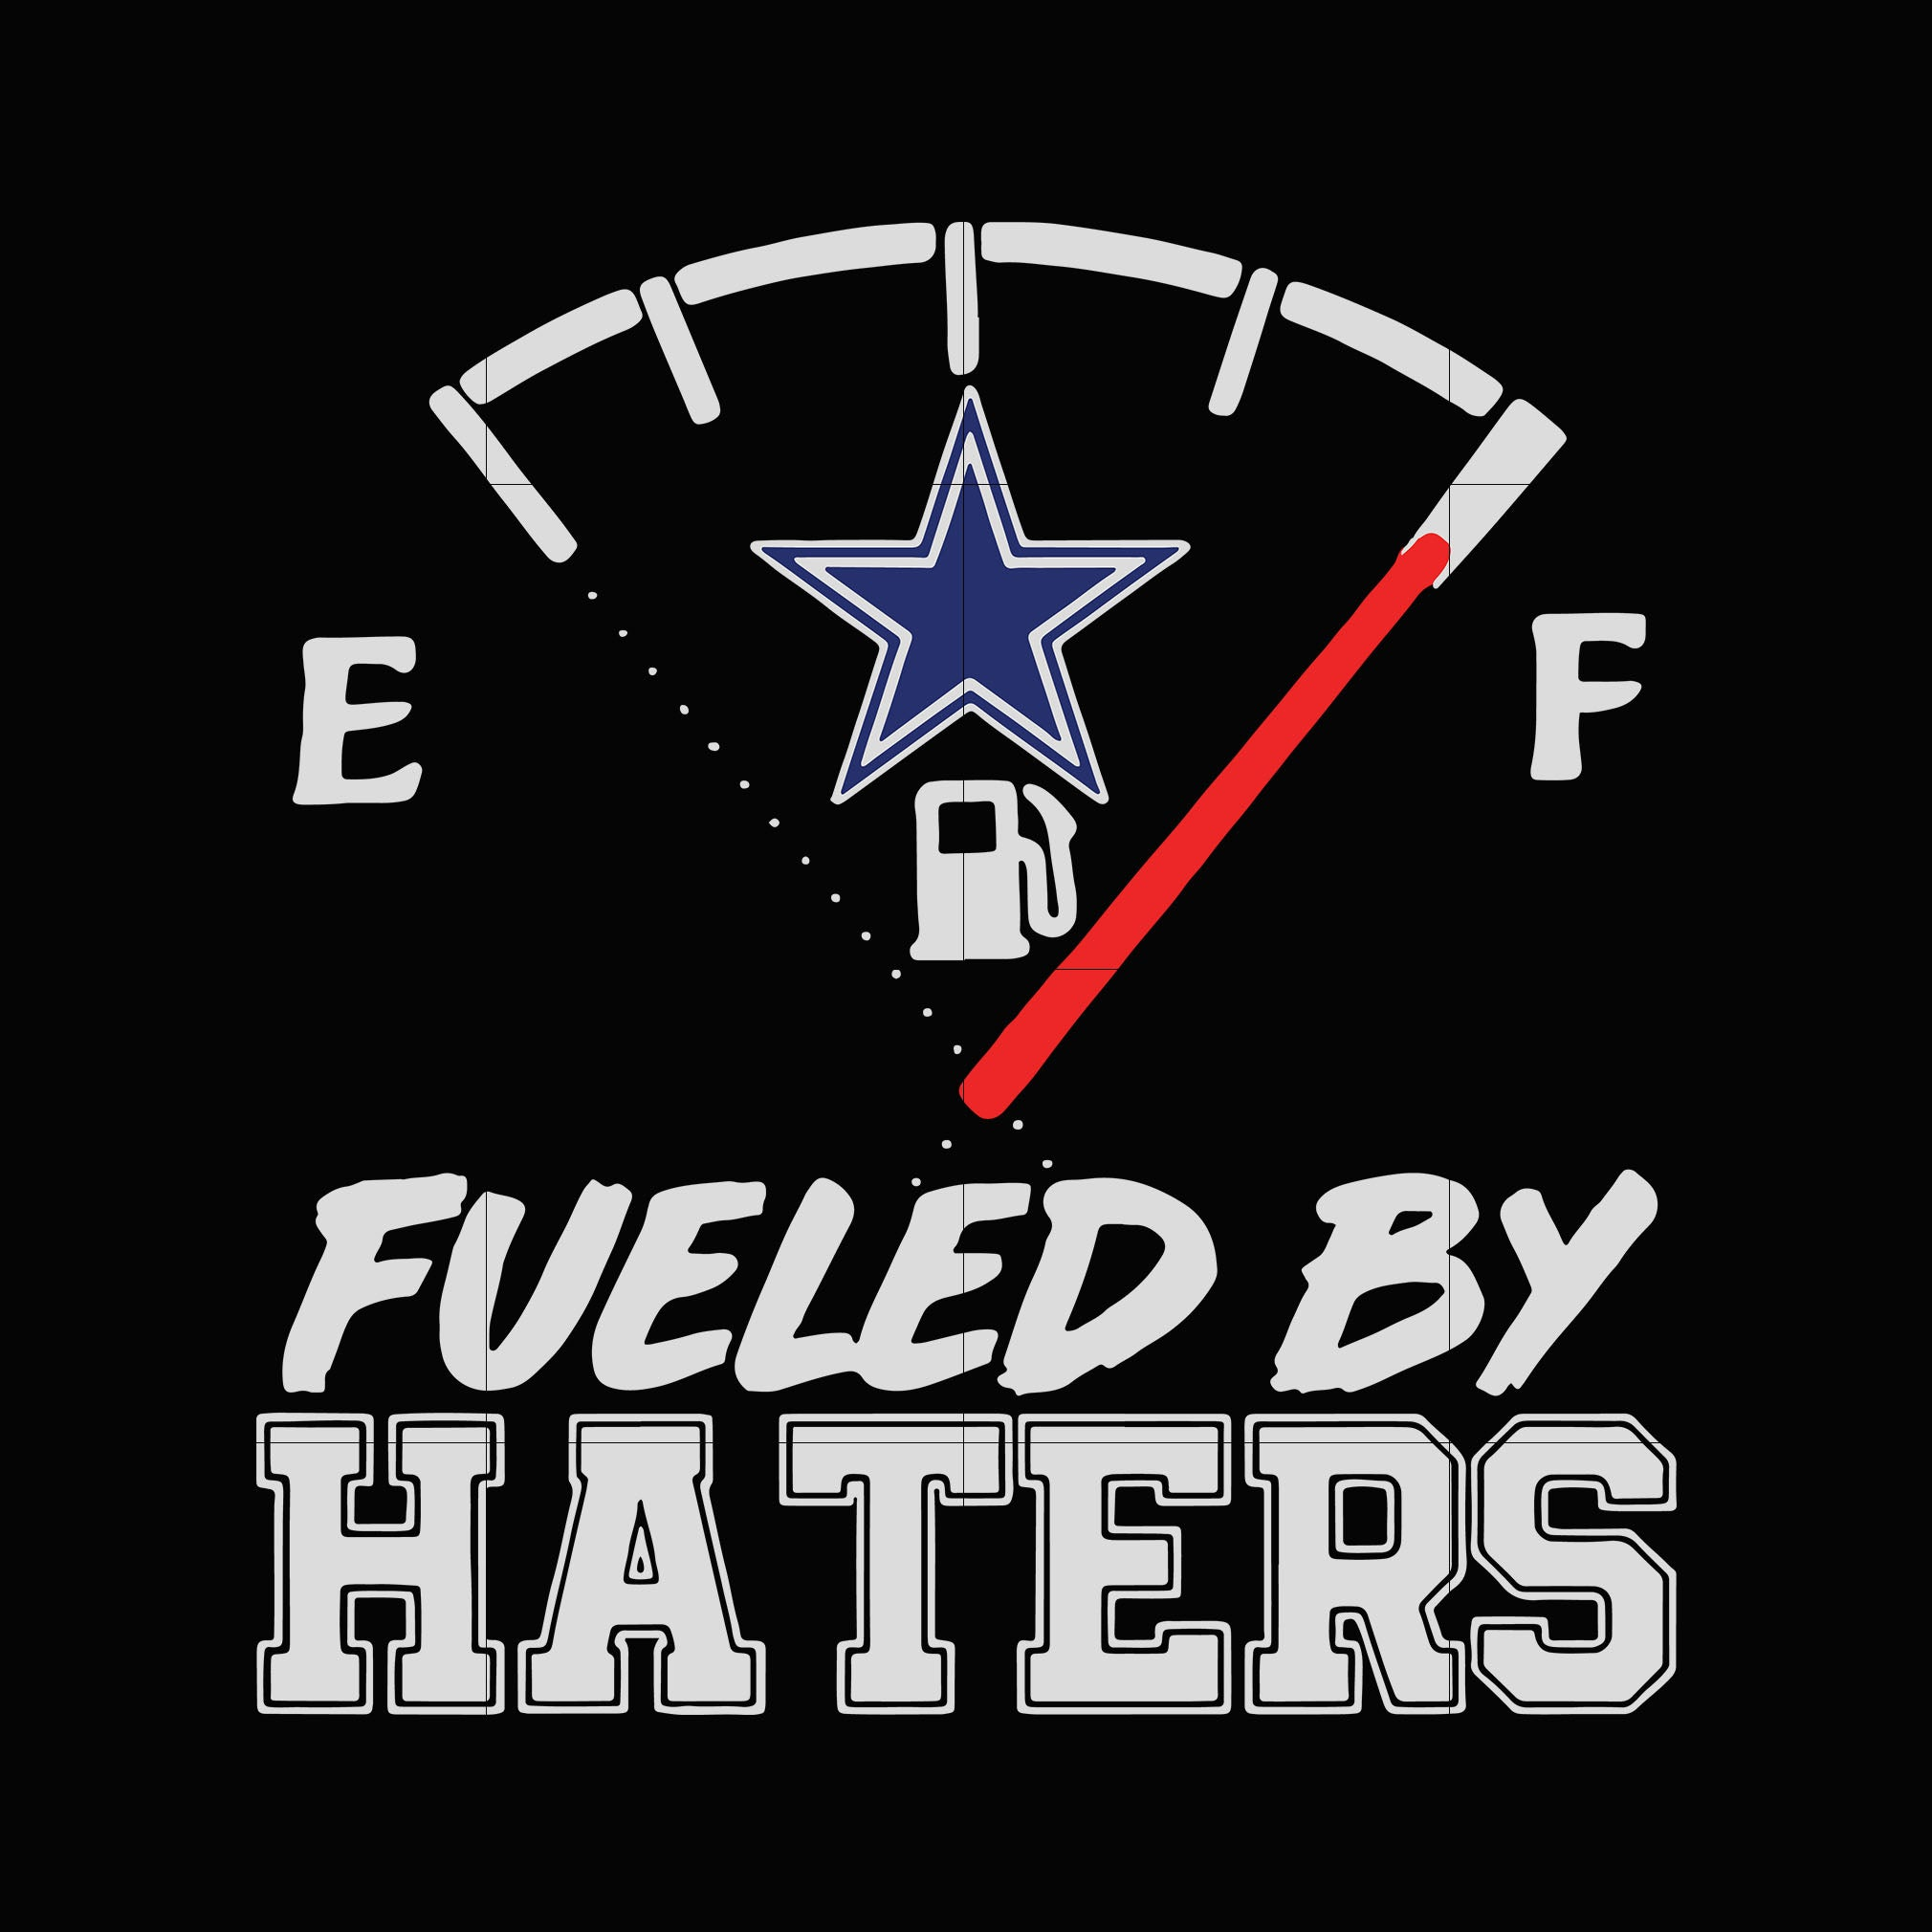 Cowboys fueled by haters svg, dallas cowboys svg, cowboys svg for cut